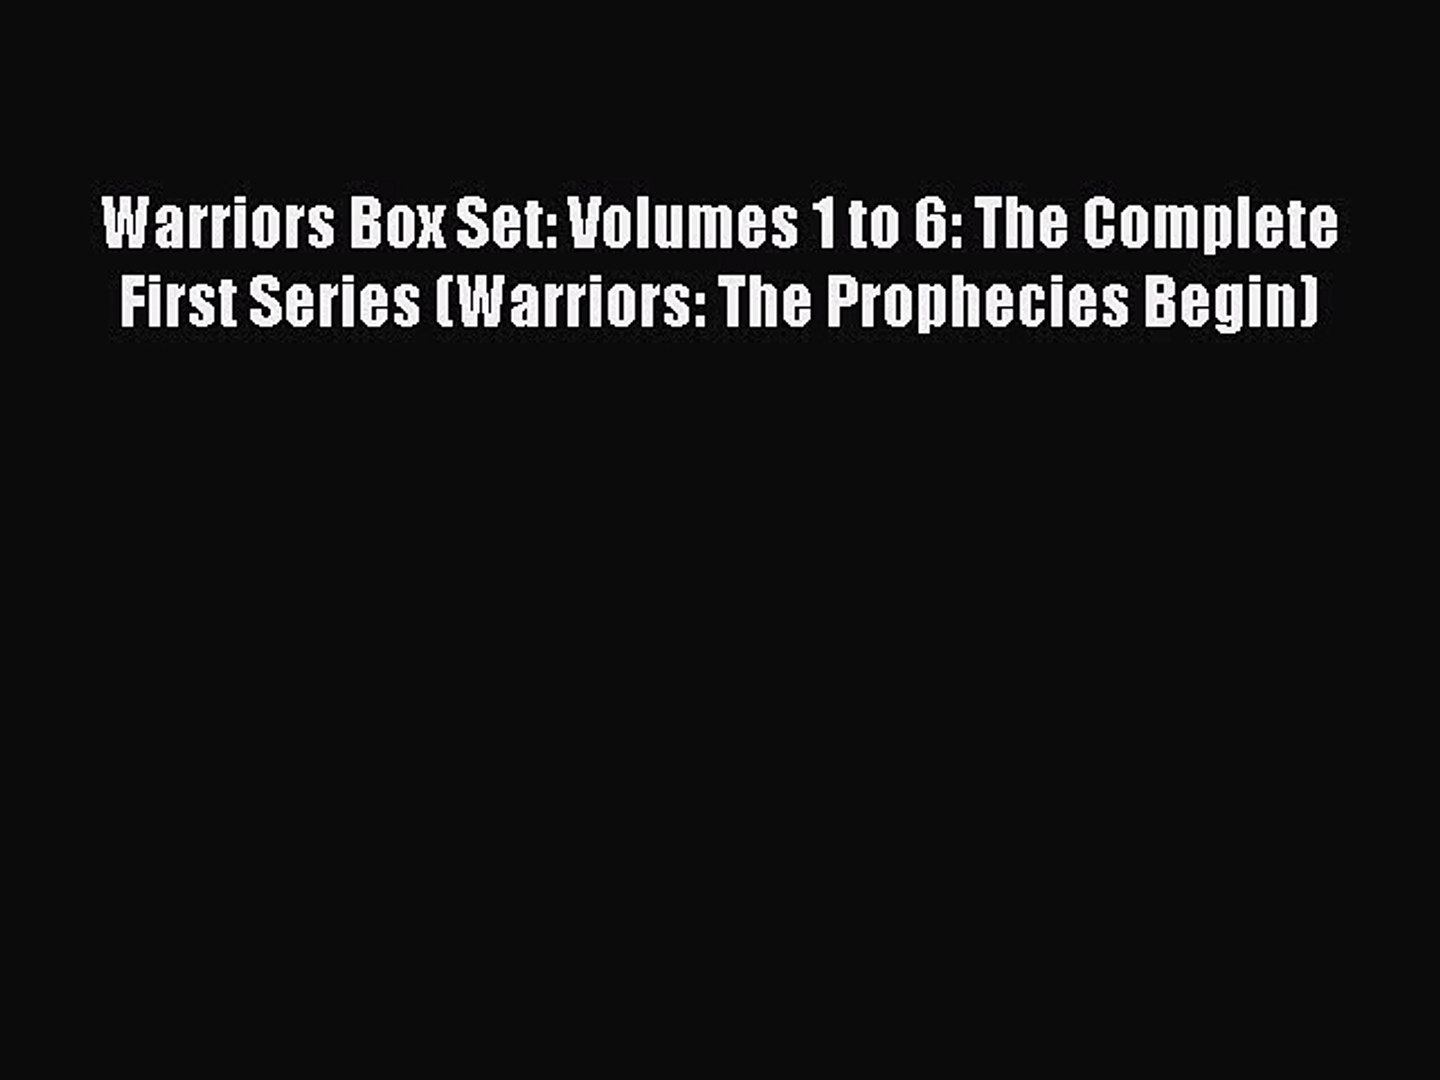 Warriors Box Set Volumes 1 to 6 The Complete First Series